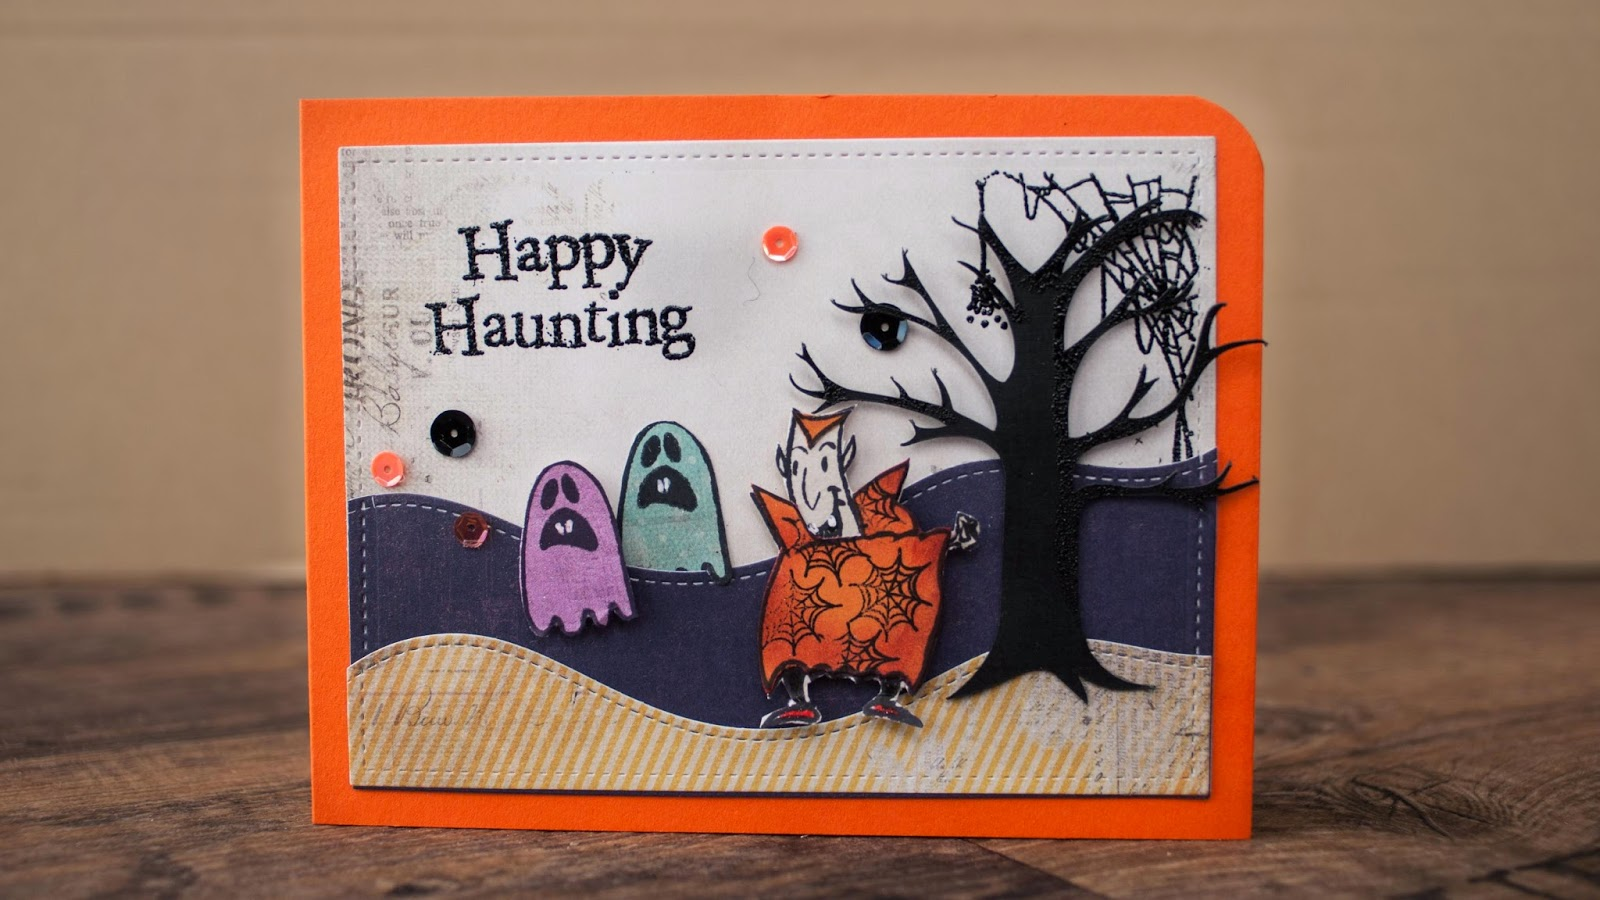 Halloween cards #1 2014 - scary vampire chasing ghosts card making tutorial using paper piecing and partial embossing